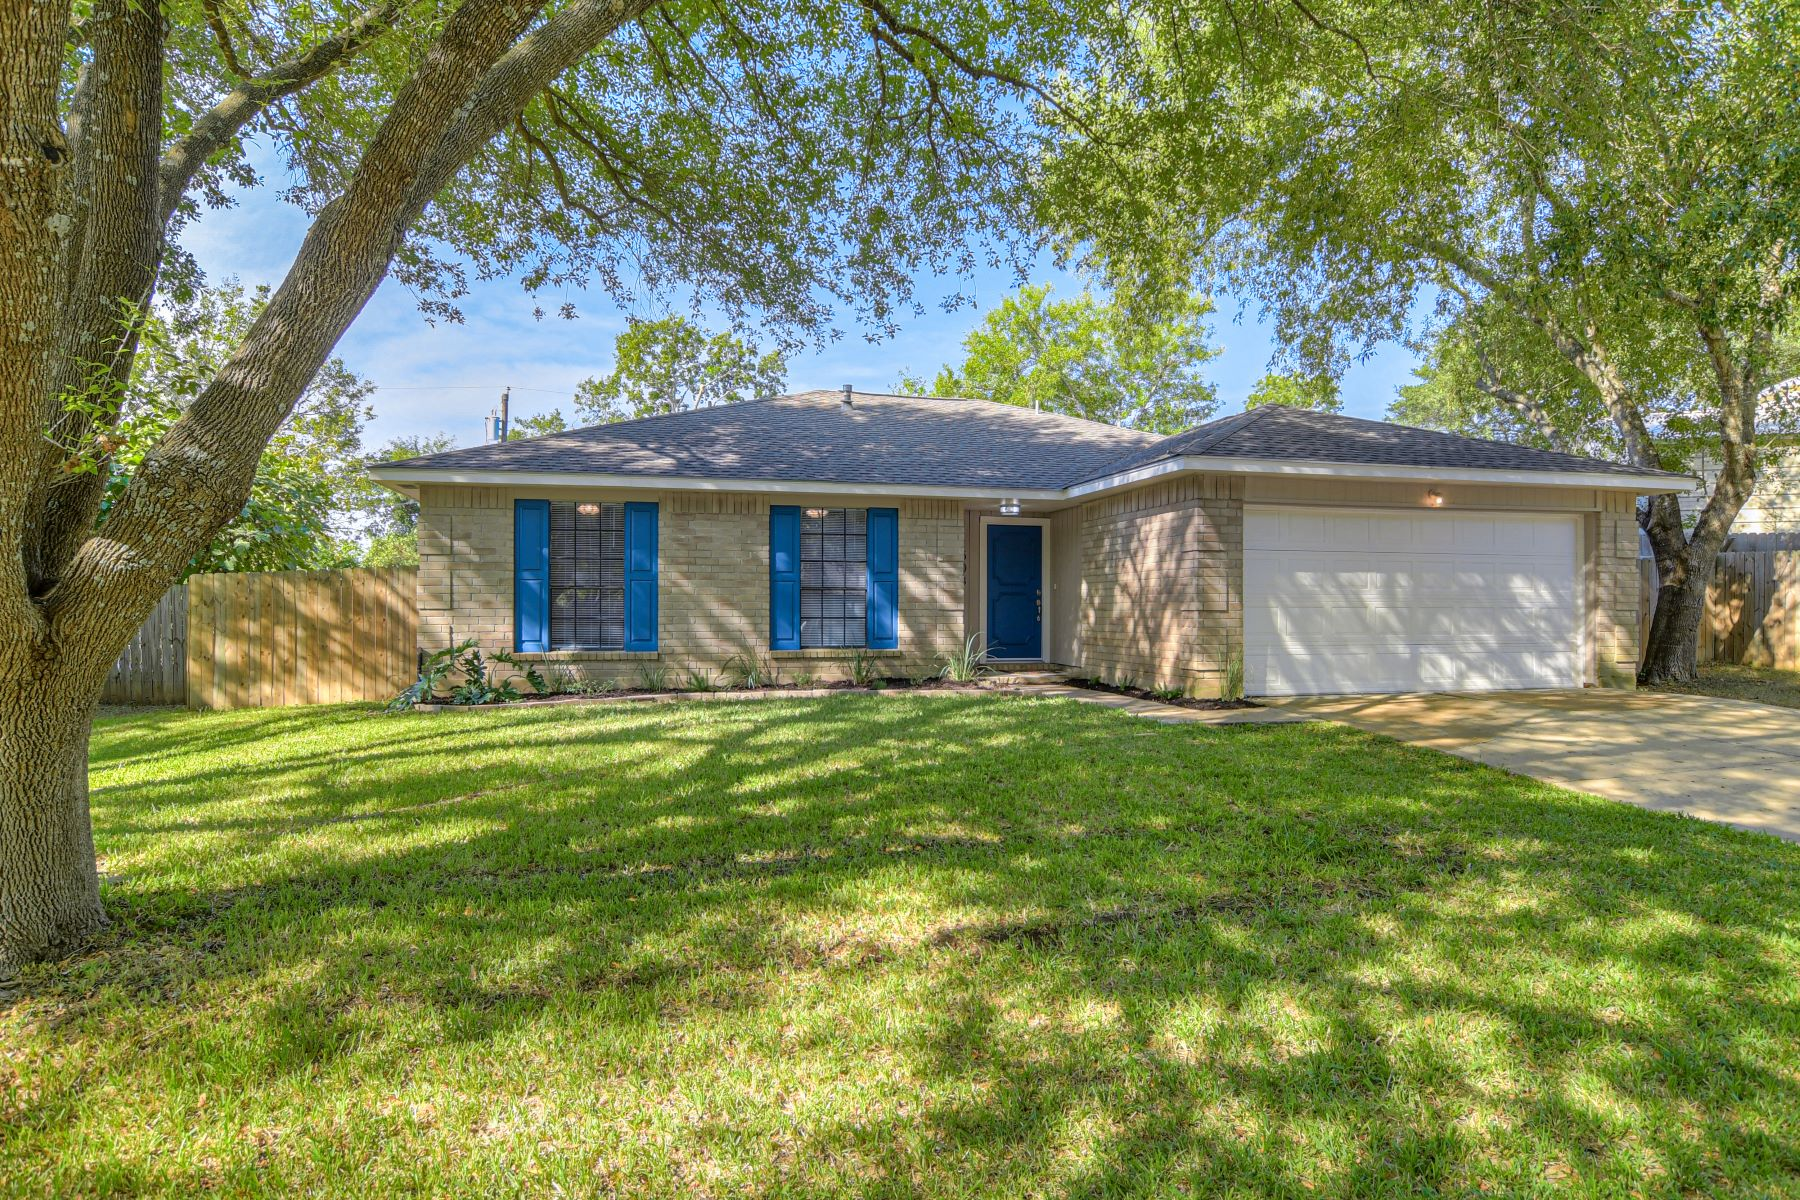 Single Family Homes for Sale at 1503 Pigeon Forge Road, Pflugerville, TX 78660 Pflugerville, Texas 78660 United States